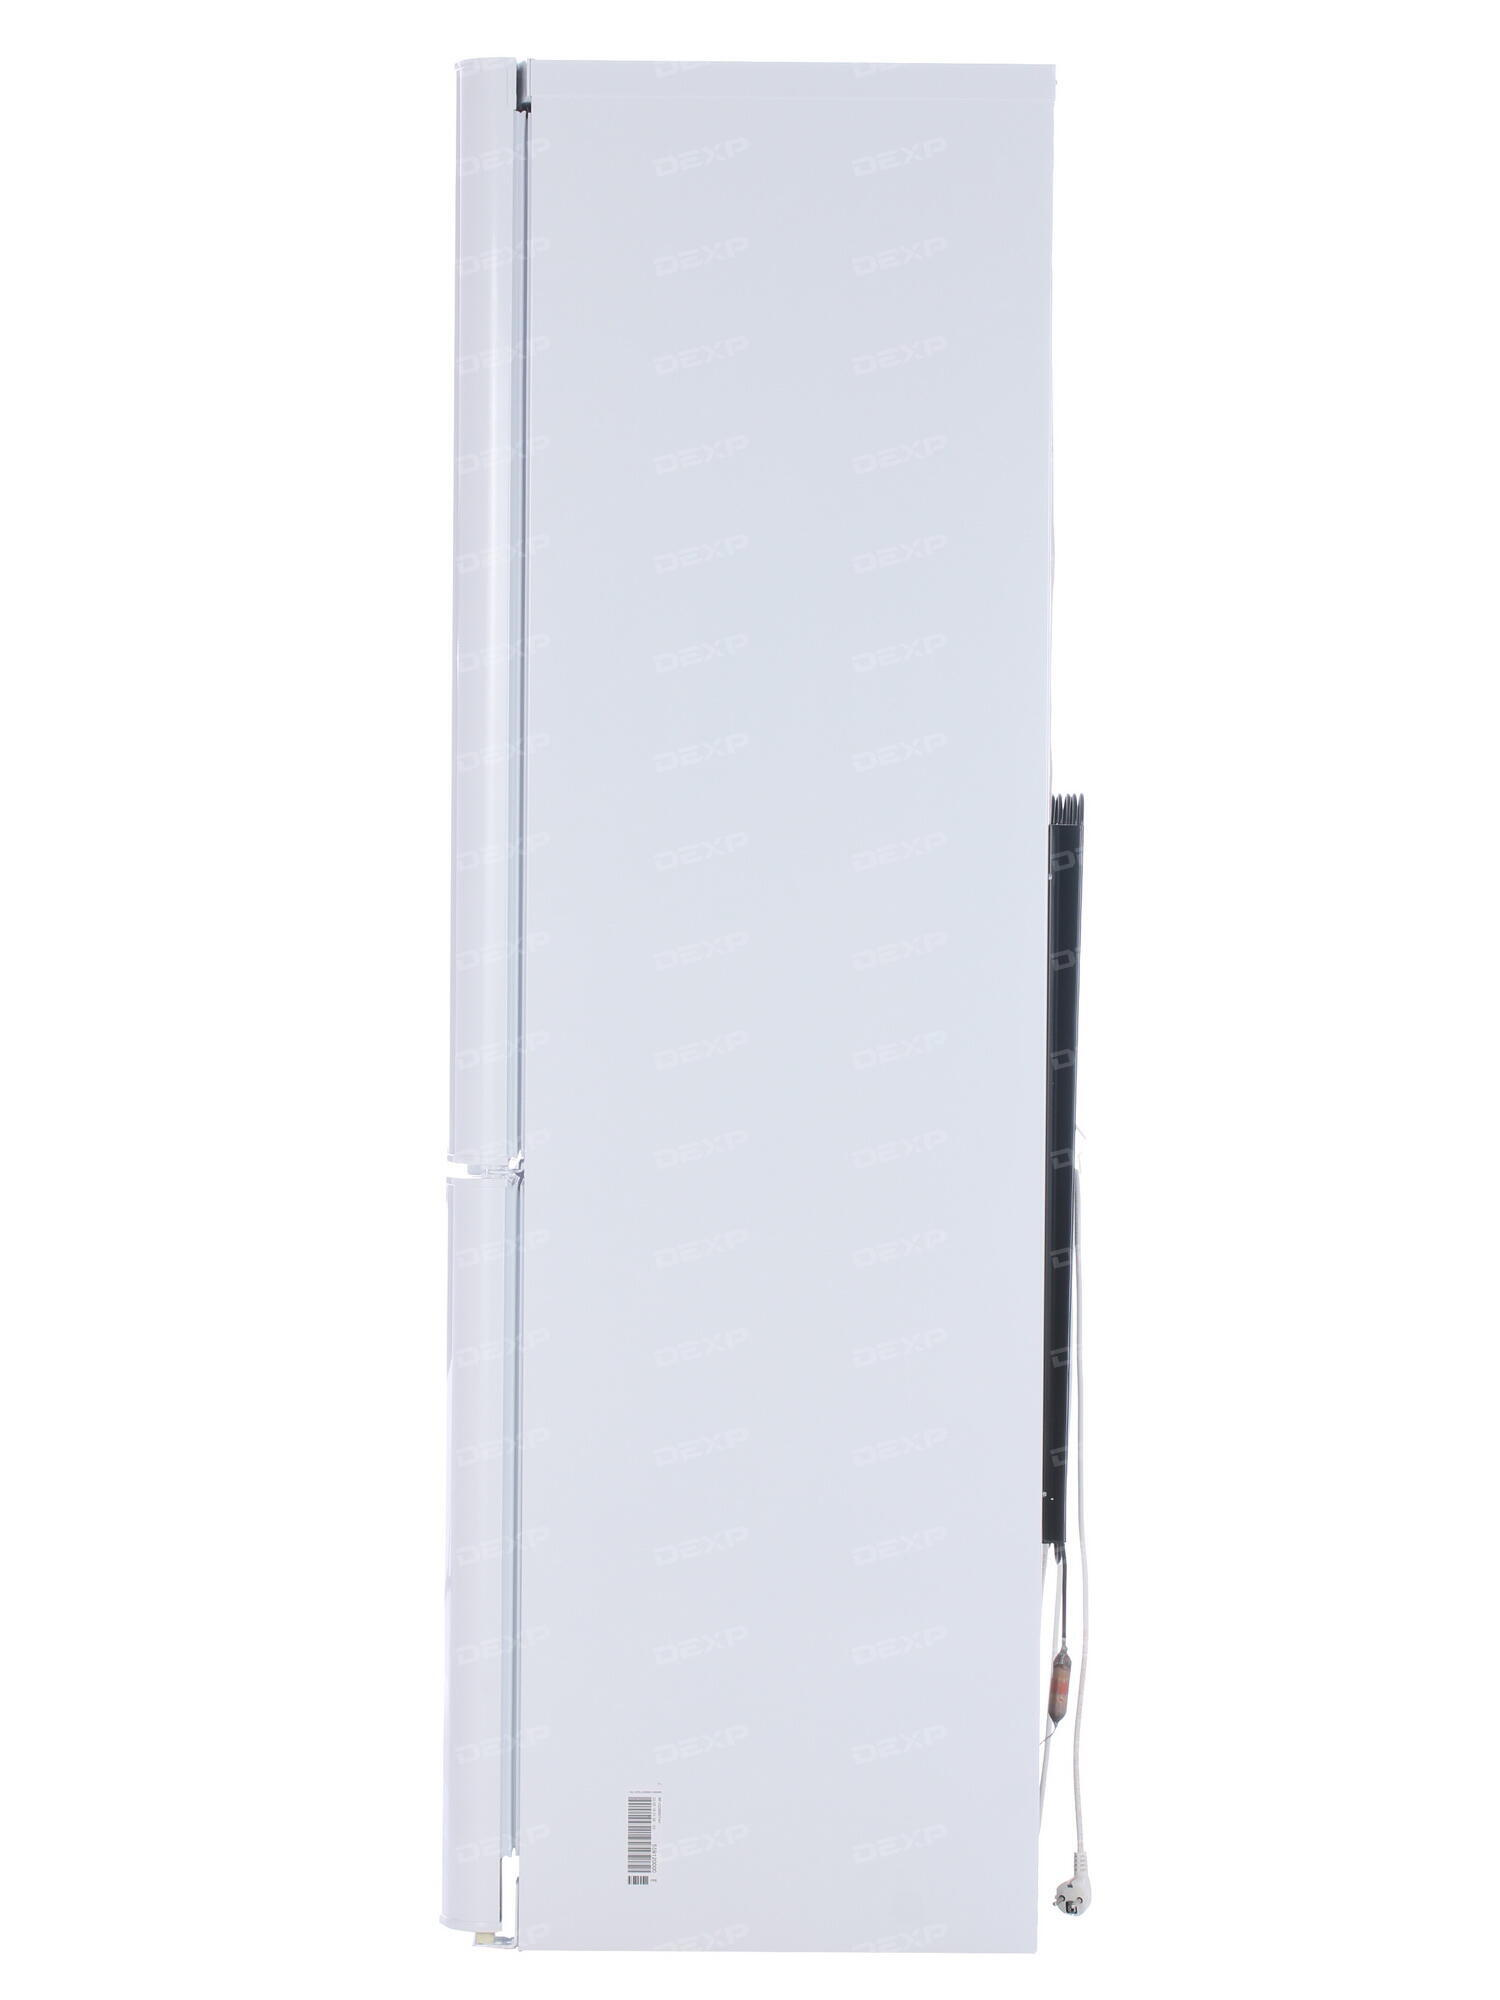 it320 The intex it 320w 2 multimedia speakers are an impressive combination of style and sound available in an elegant finish, these speakers sport a durable and compact body.